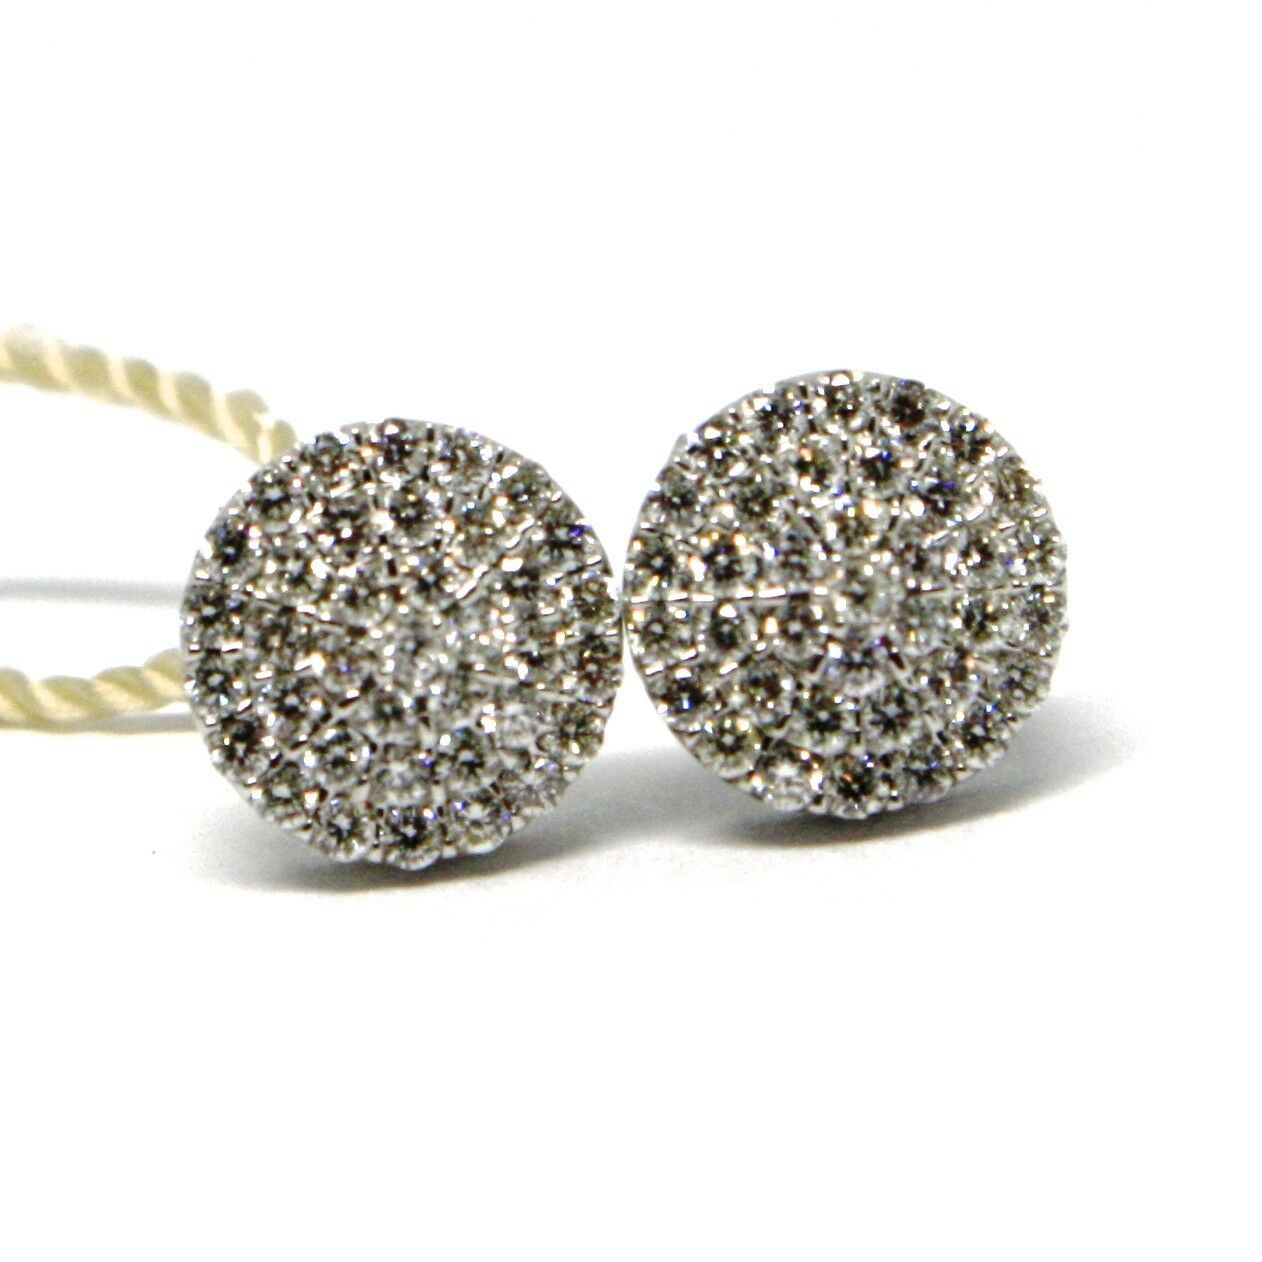 White Gold Earrings 750 18k, Diamonds Carat 0.50, Button, round, Pave 8 Mm